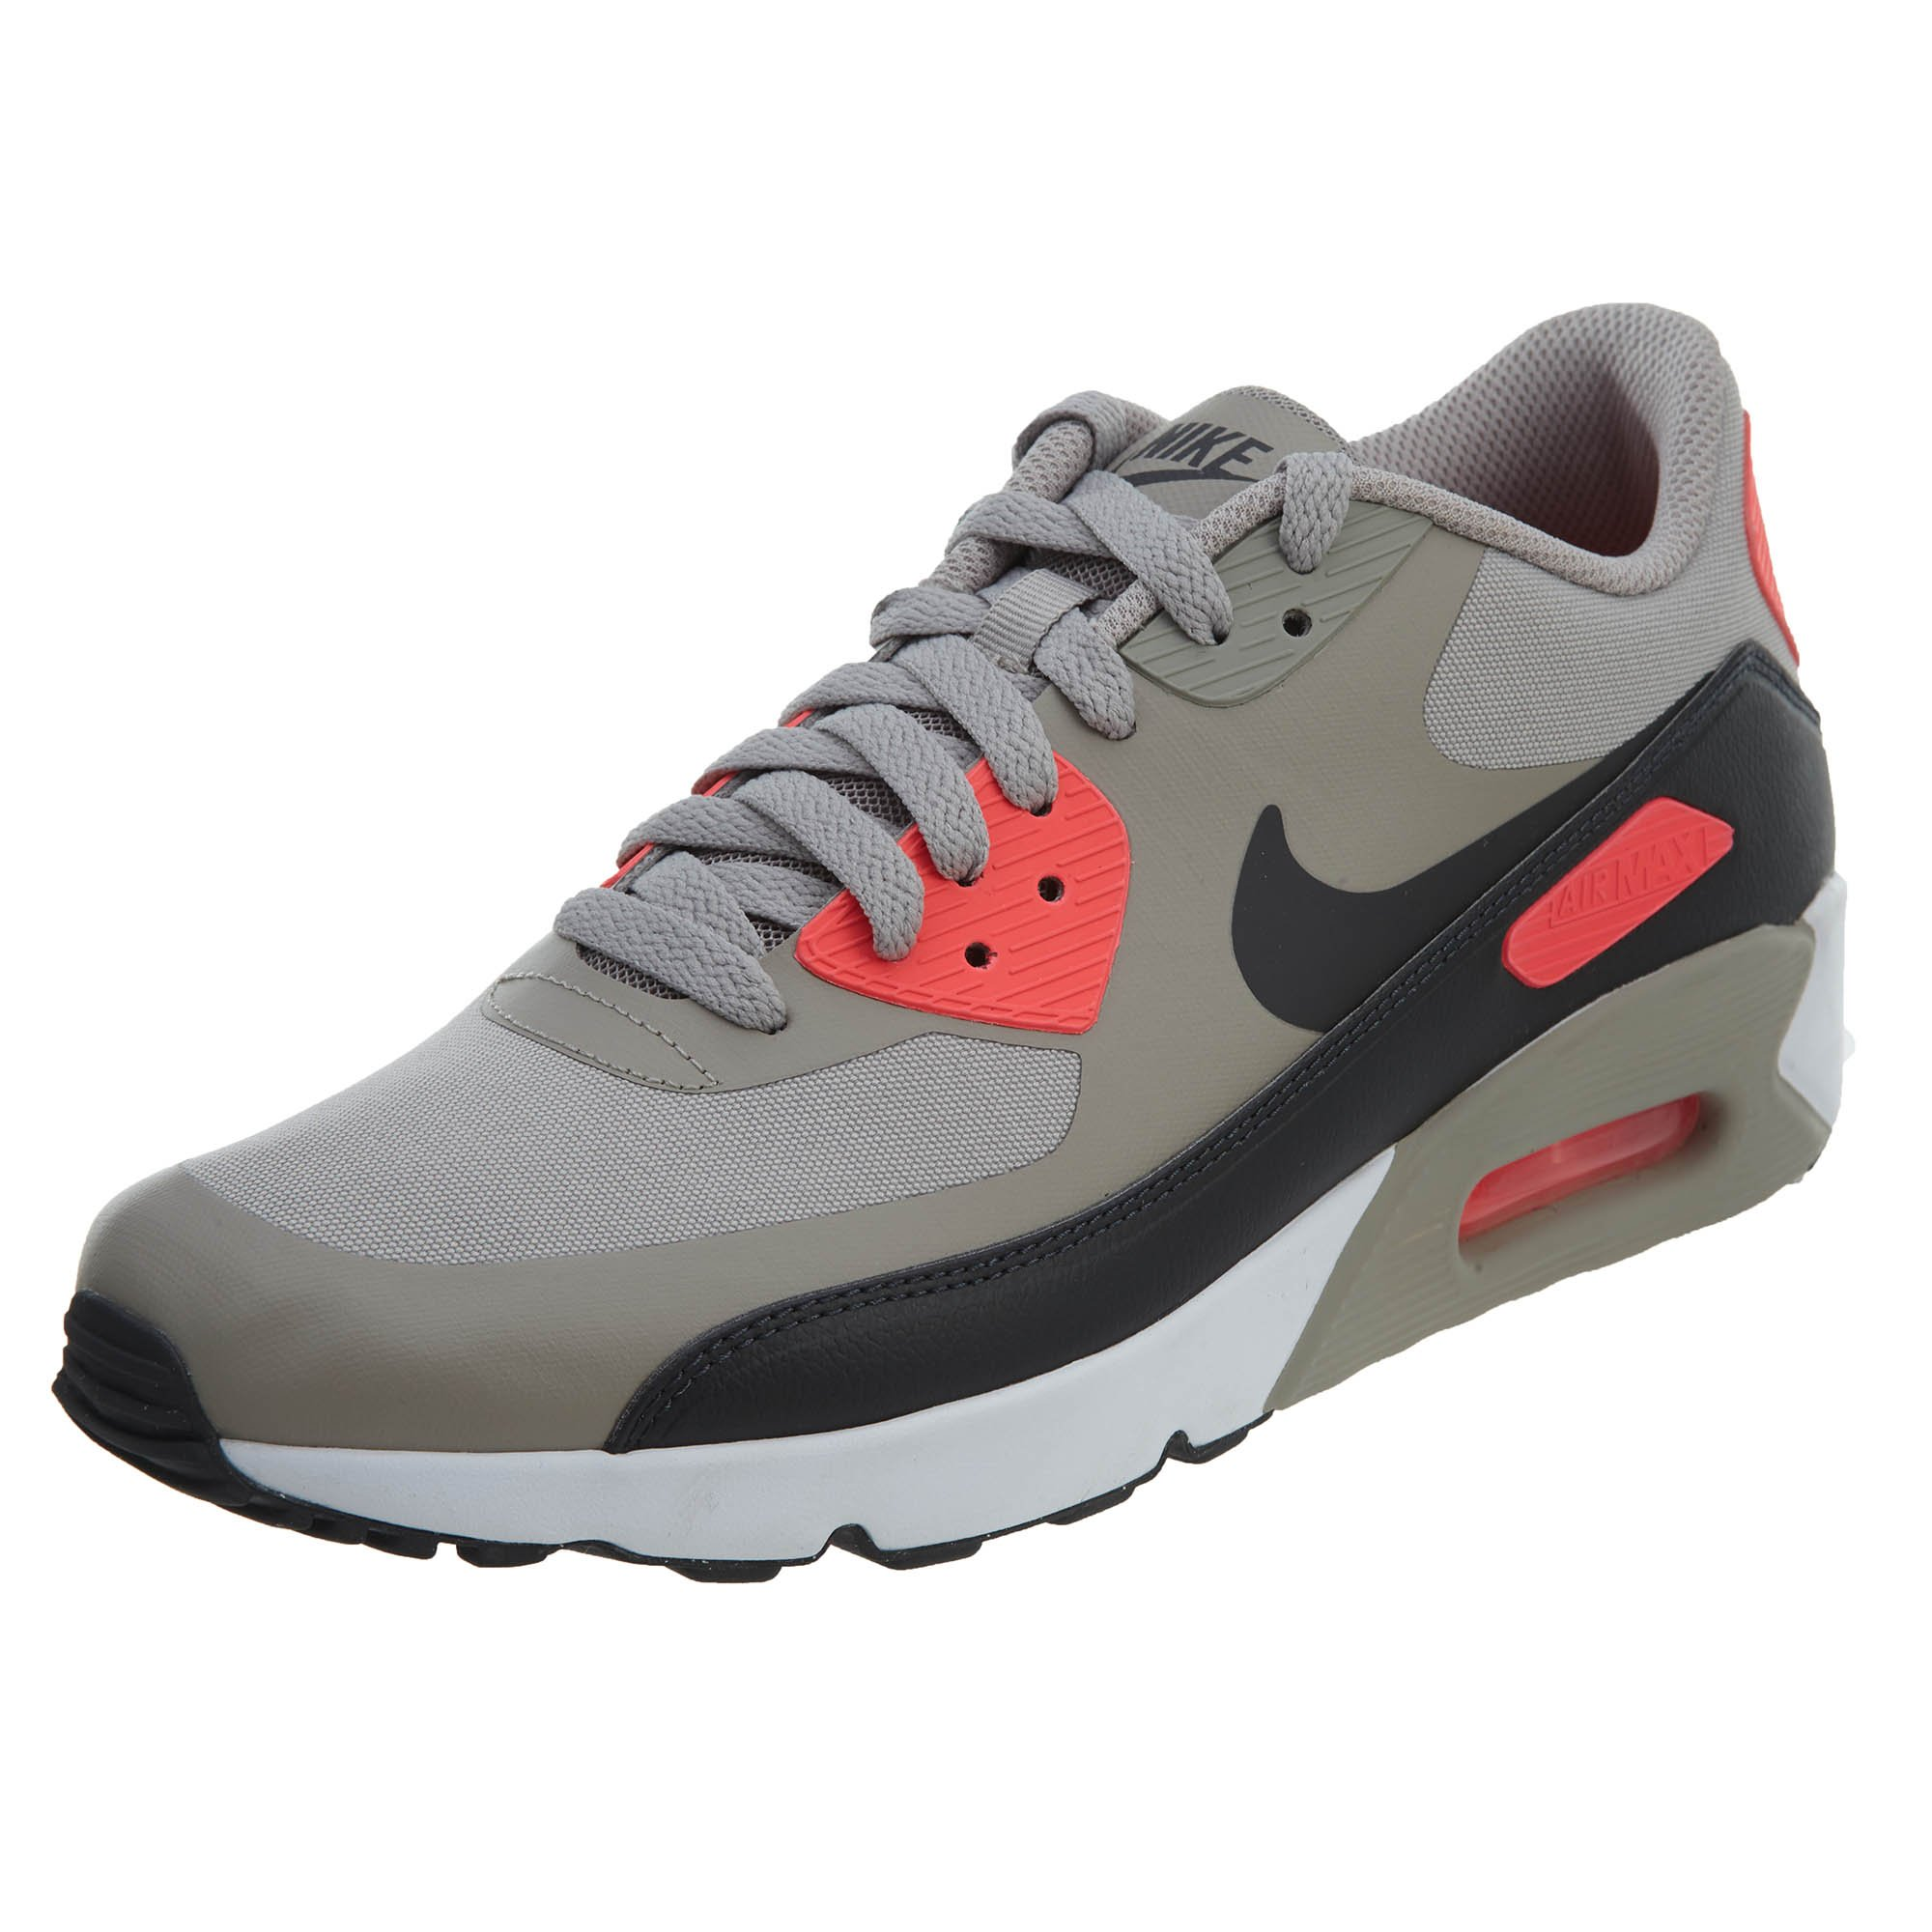 9f6f92737bea9 NIKE Air Max 90 Ultra 2.0 Essential Mens Running Shoes (9.5 D(M) US)